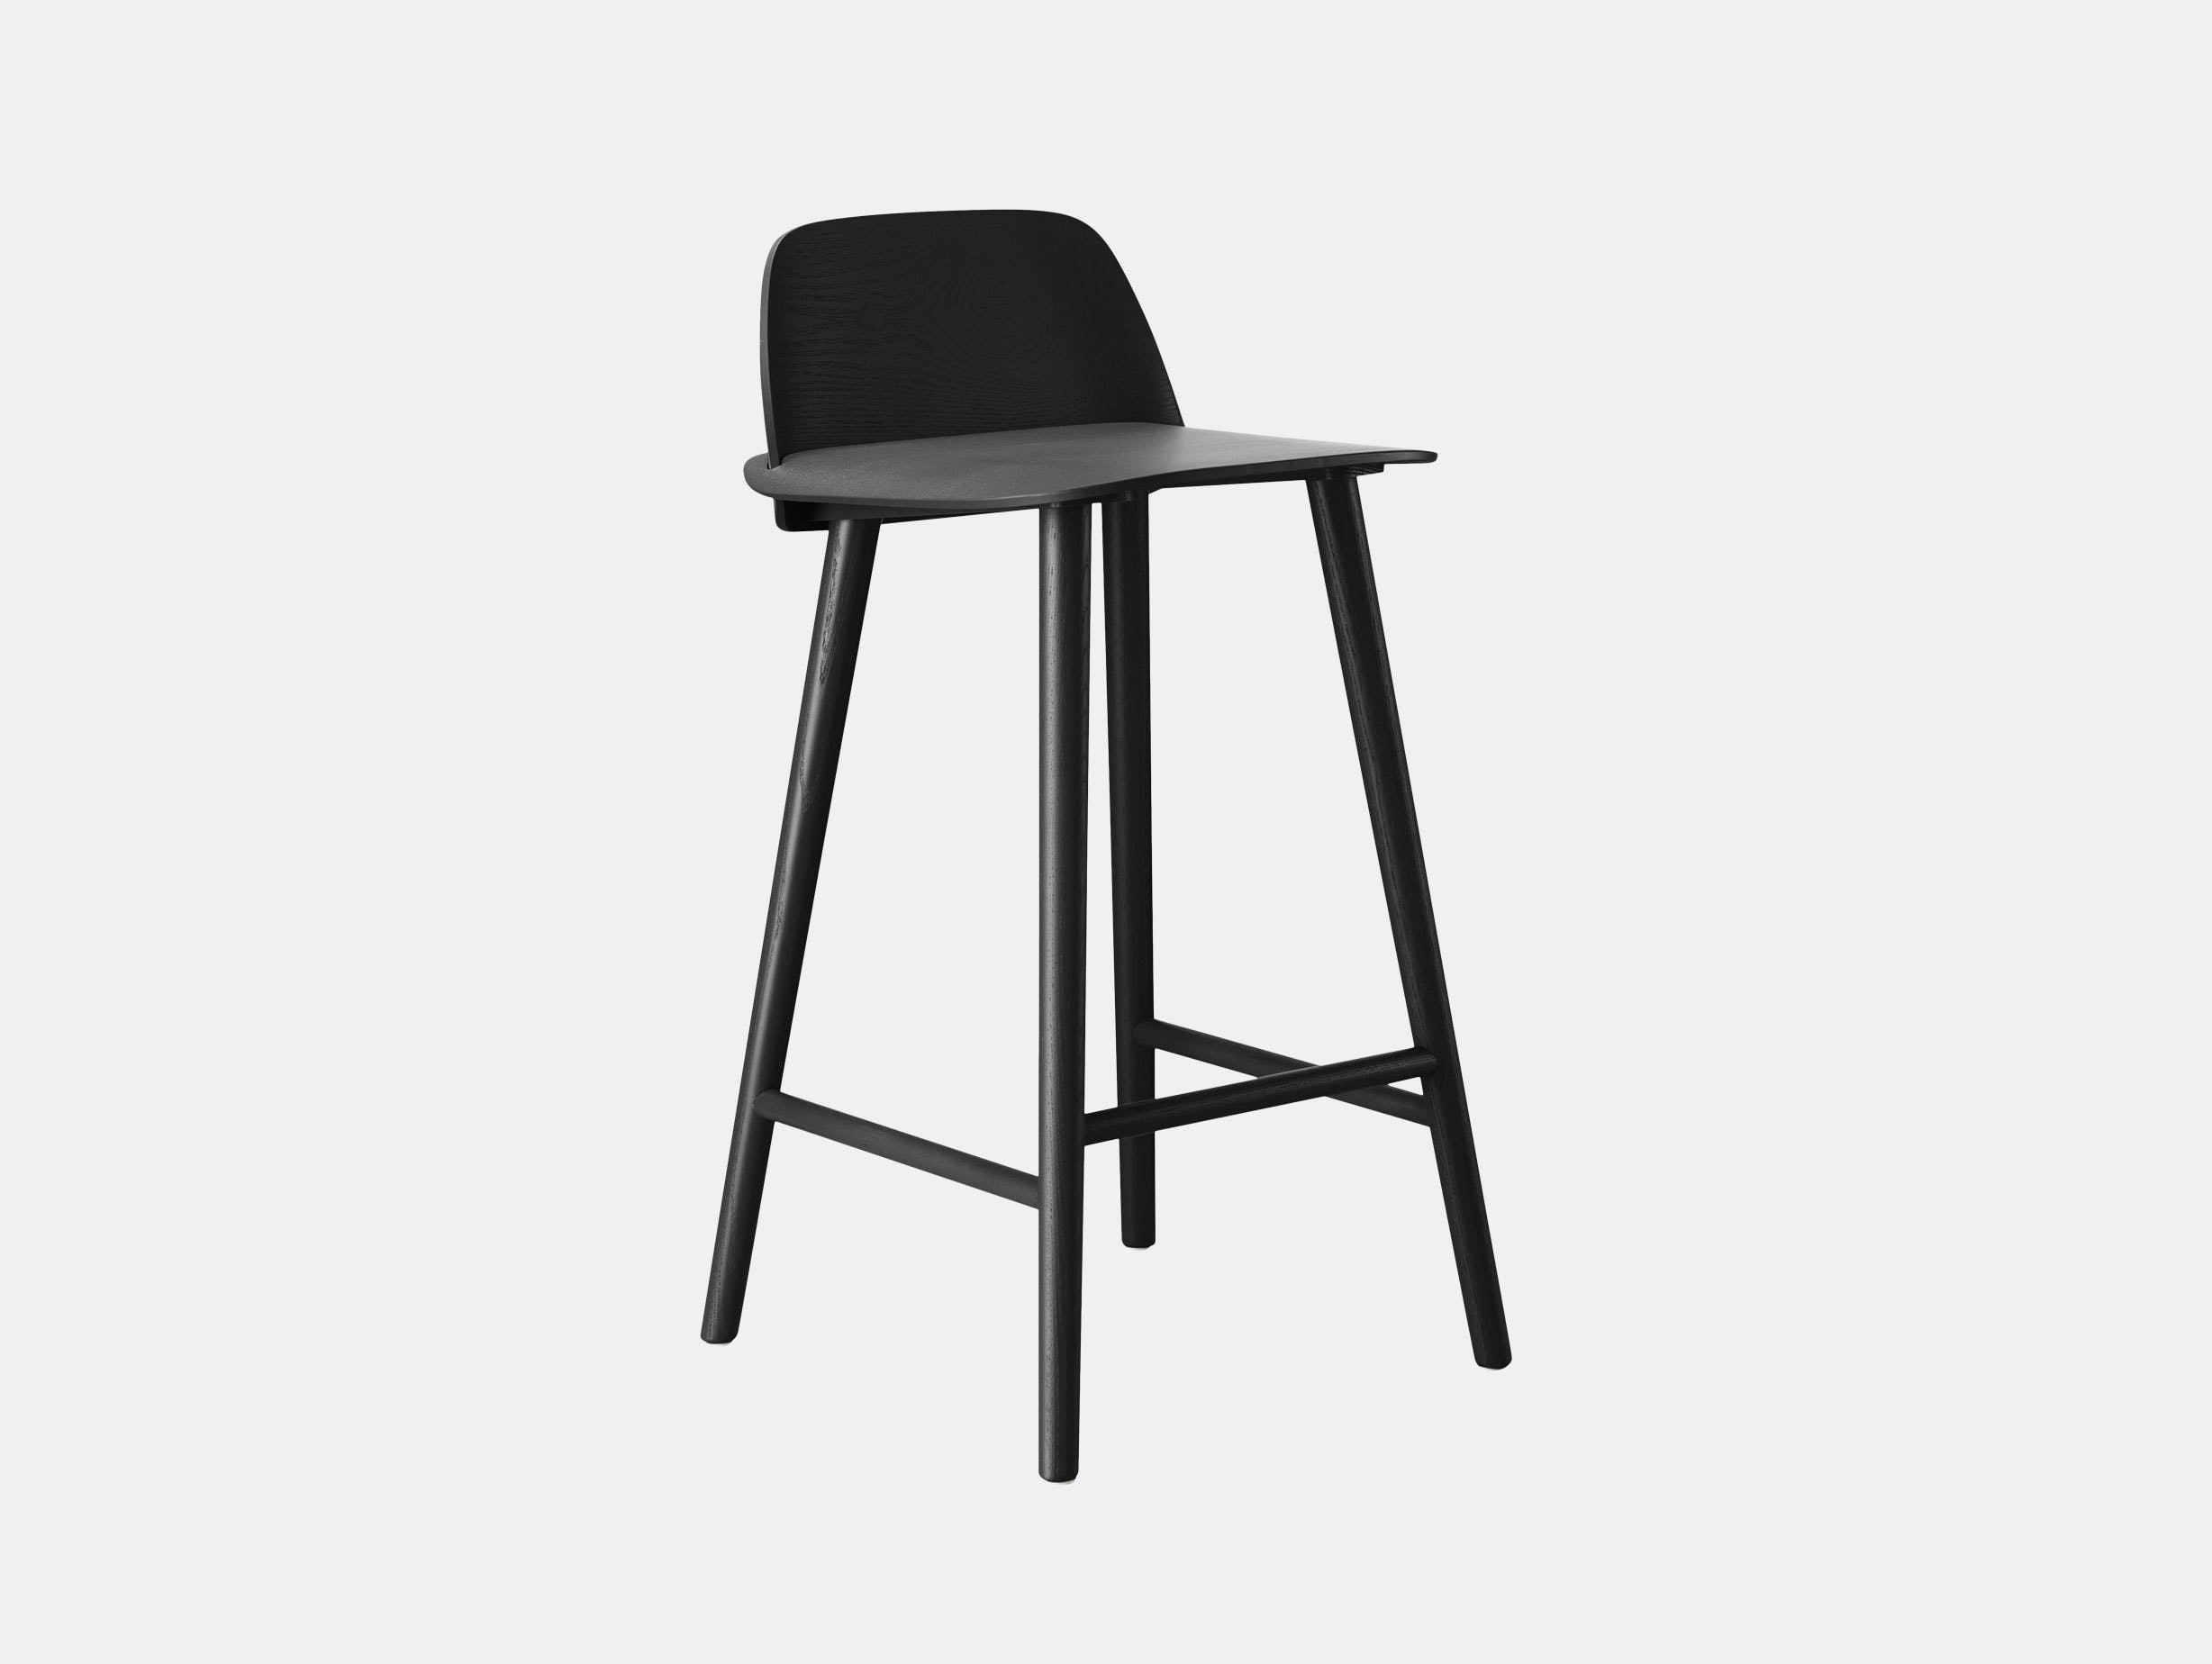 Muuto Nerd Stool Black David Geckeler